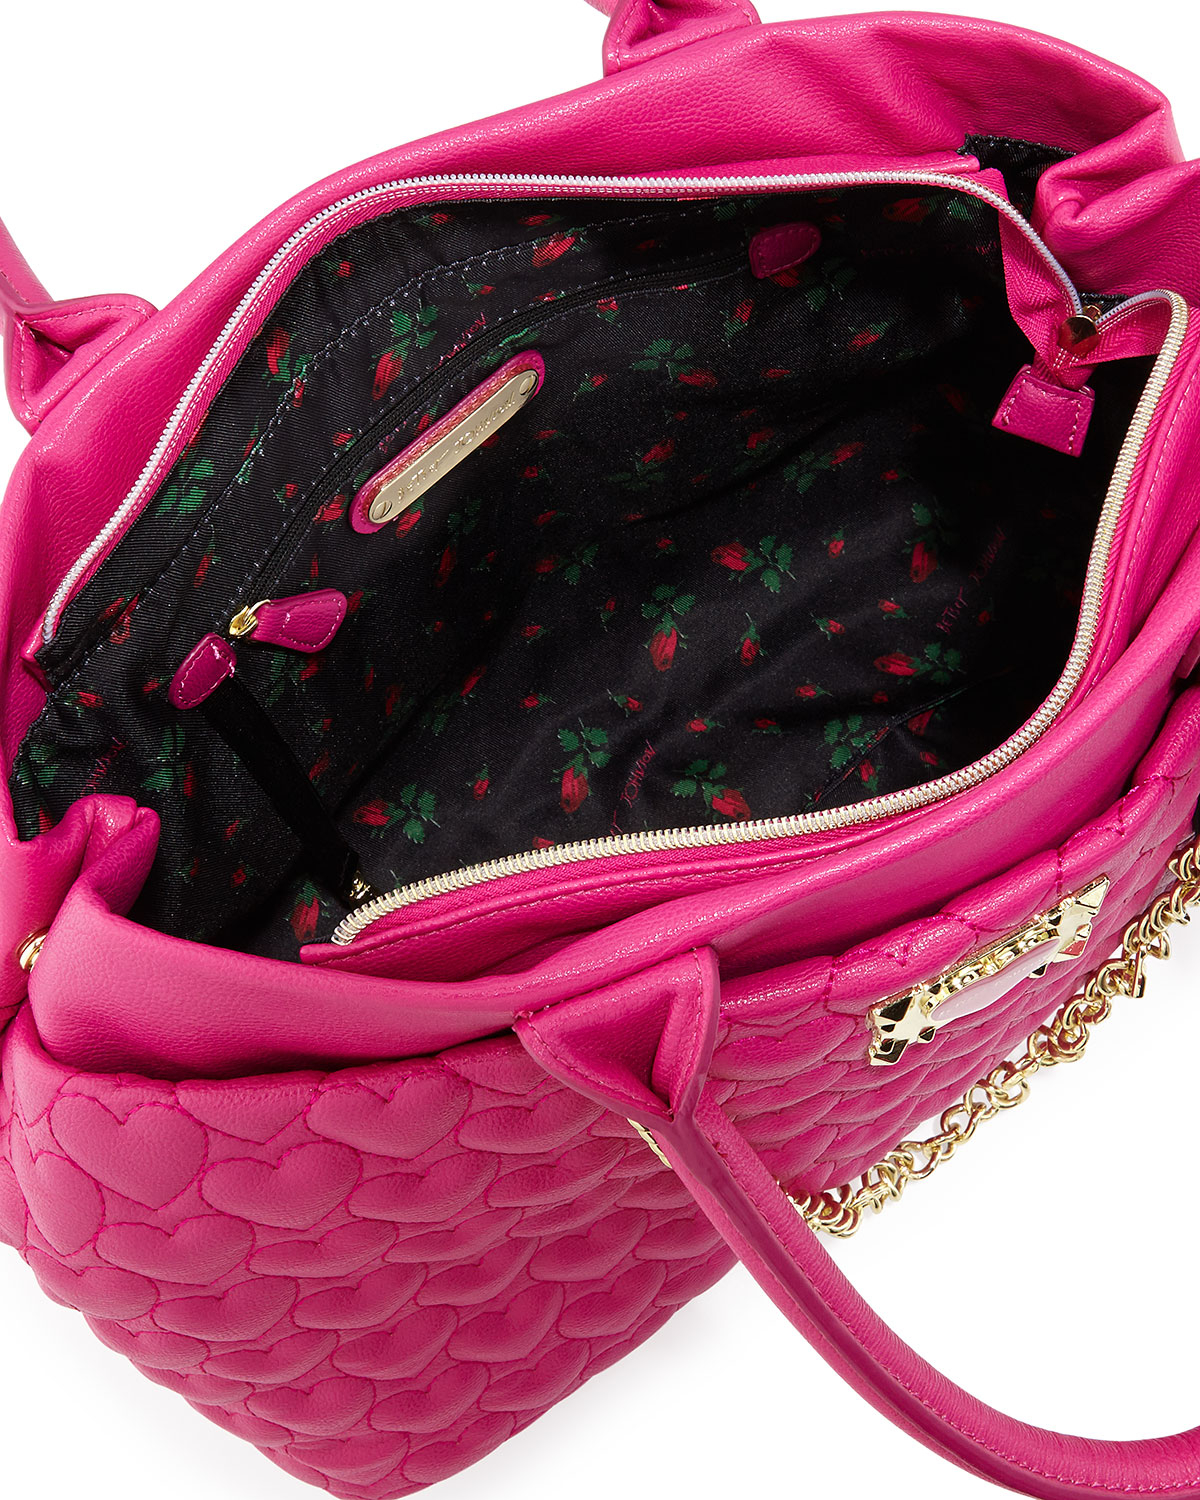 5ef7bc9ec48 Pink Heart Betsey Johnson Purse - Best Purse Image Ccdbb.Org